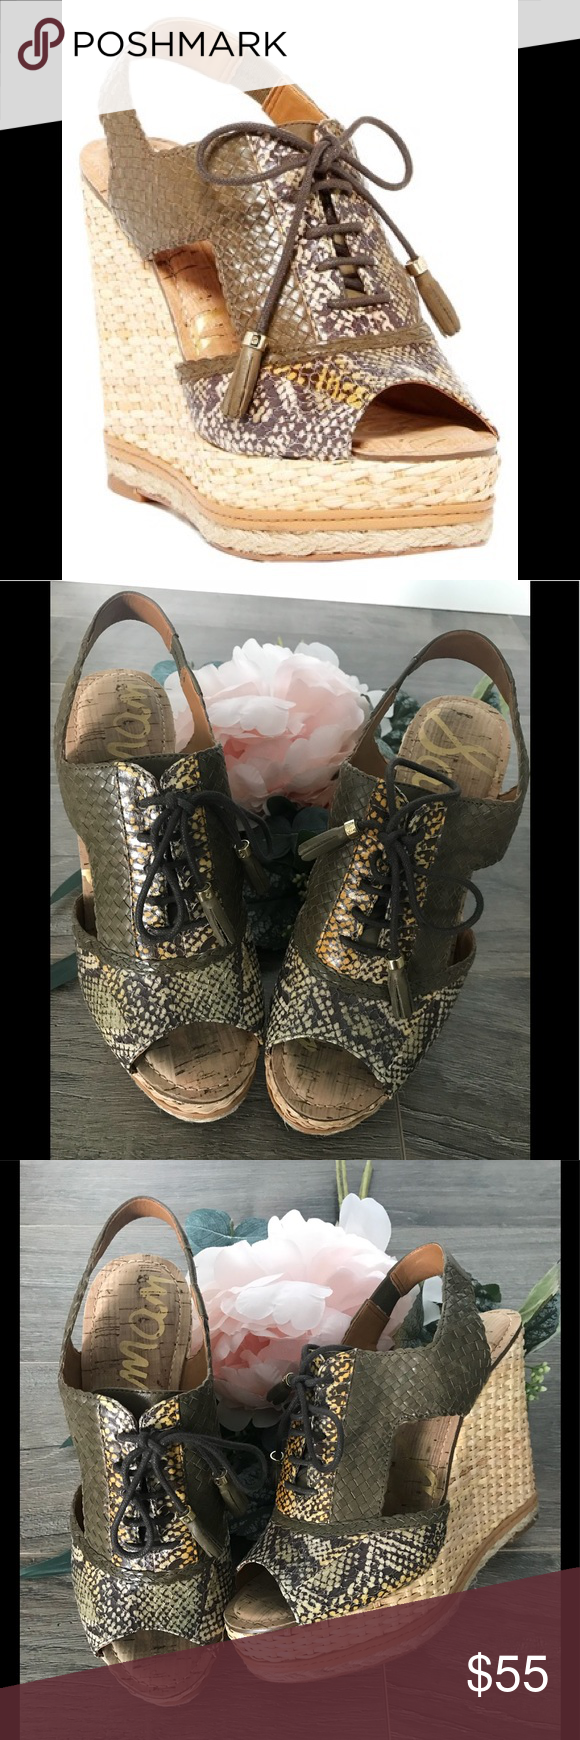 2a7db01e5f9f38 Sam Edelman Tinley Lace Up Wedges  Sam Edelman Tinley Lace-Up Wedge. -  Peep toe - Lace-up vamp with leather tassels - Snakeskin and woven  construction ...